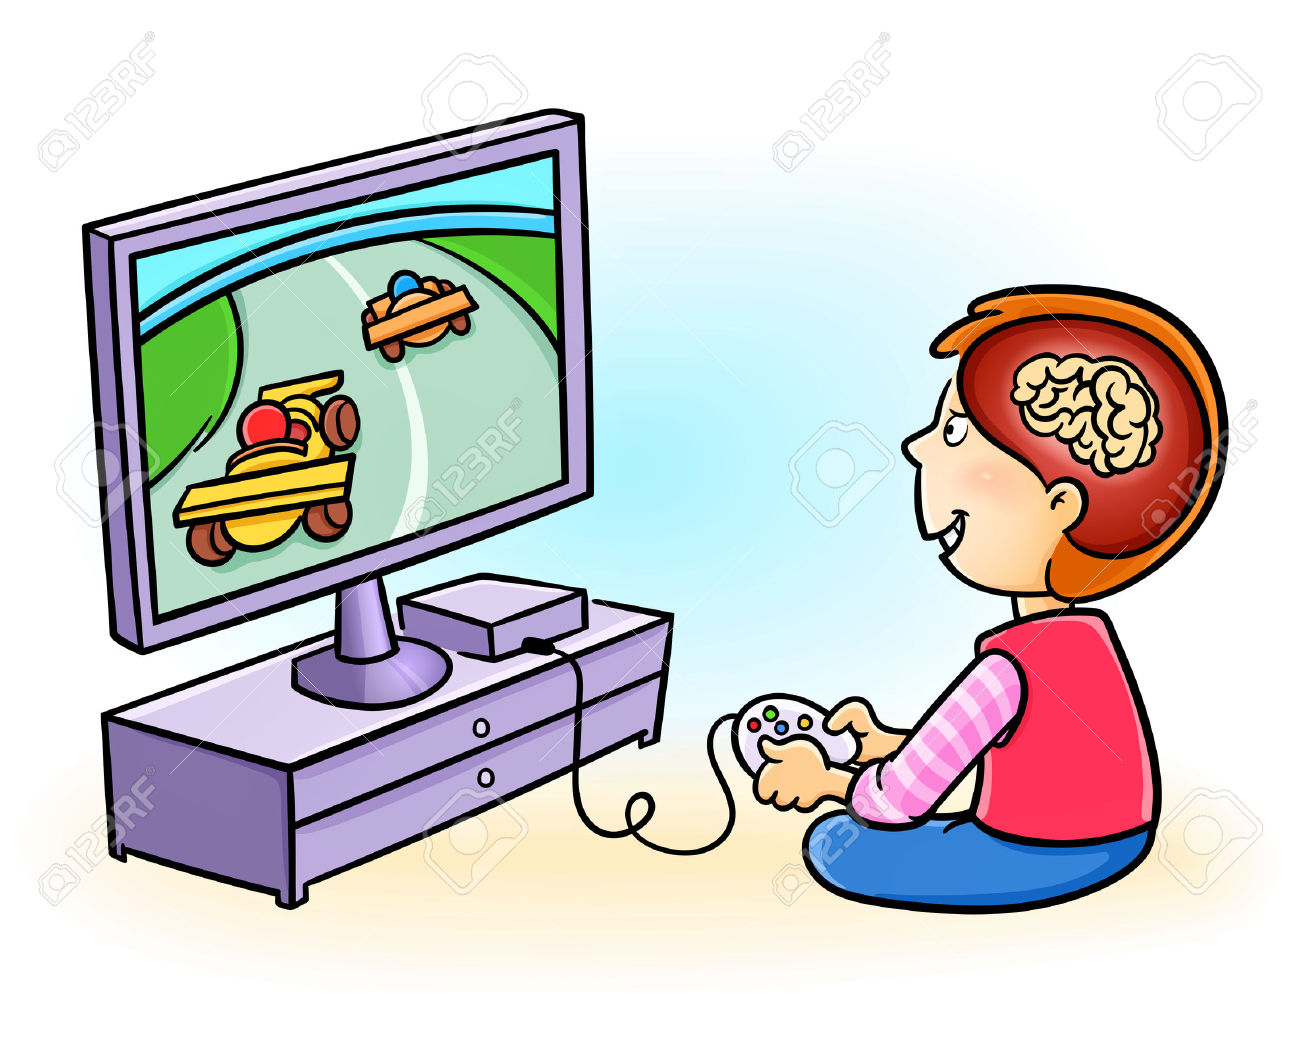 Video Game clipart #12